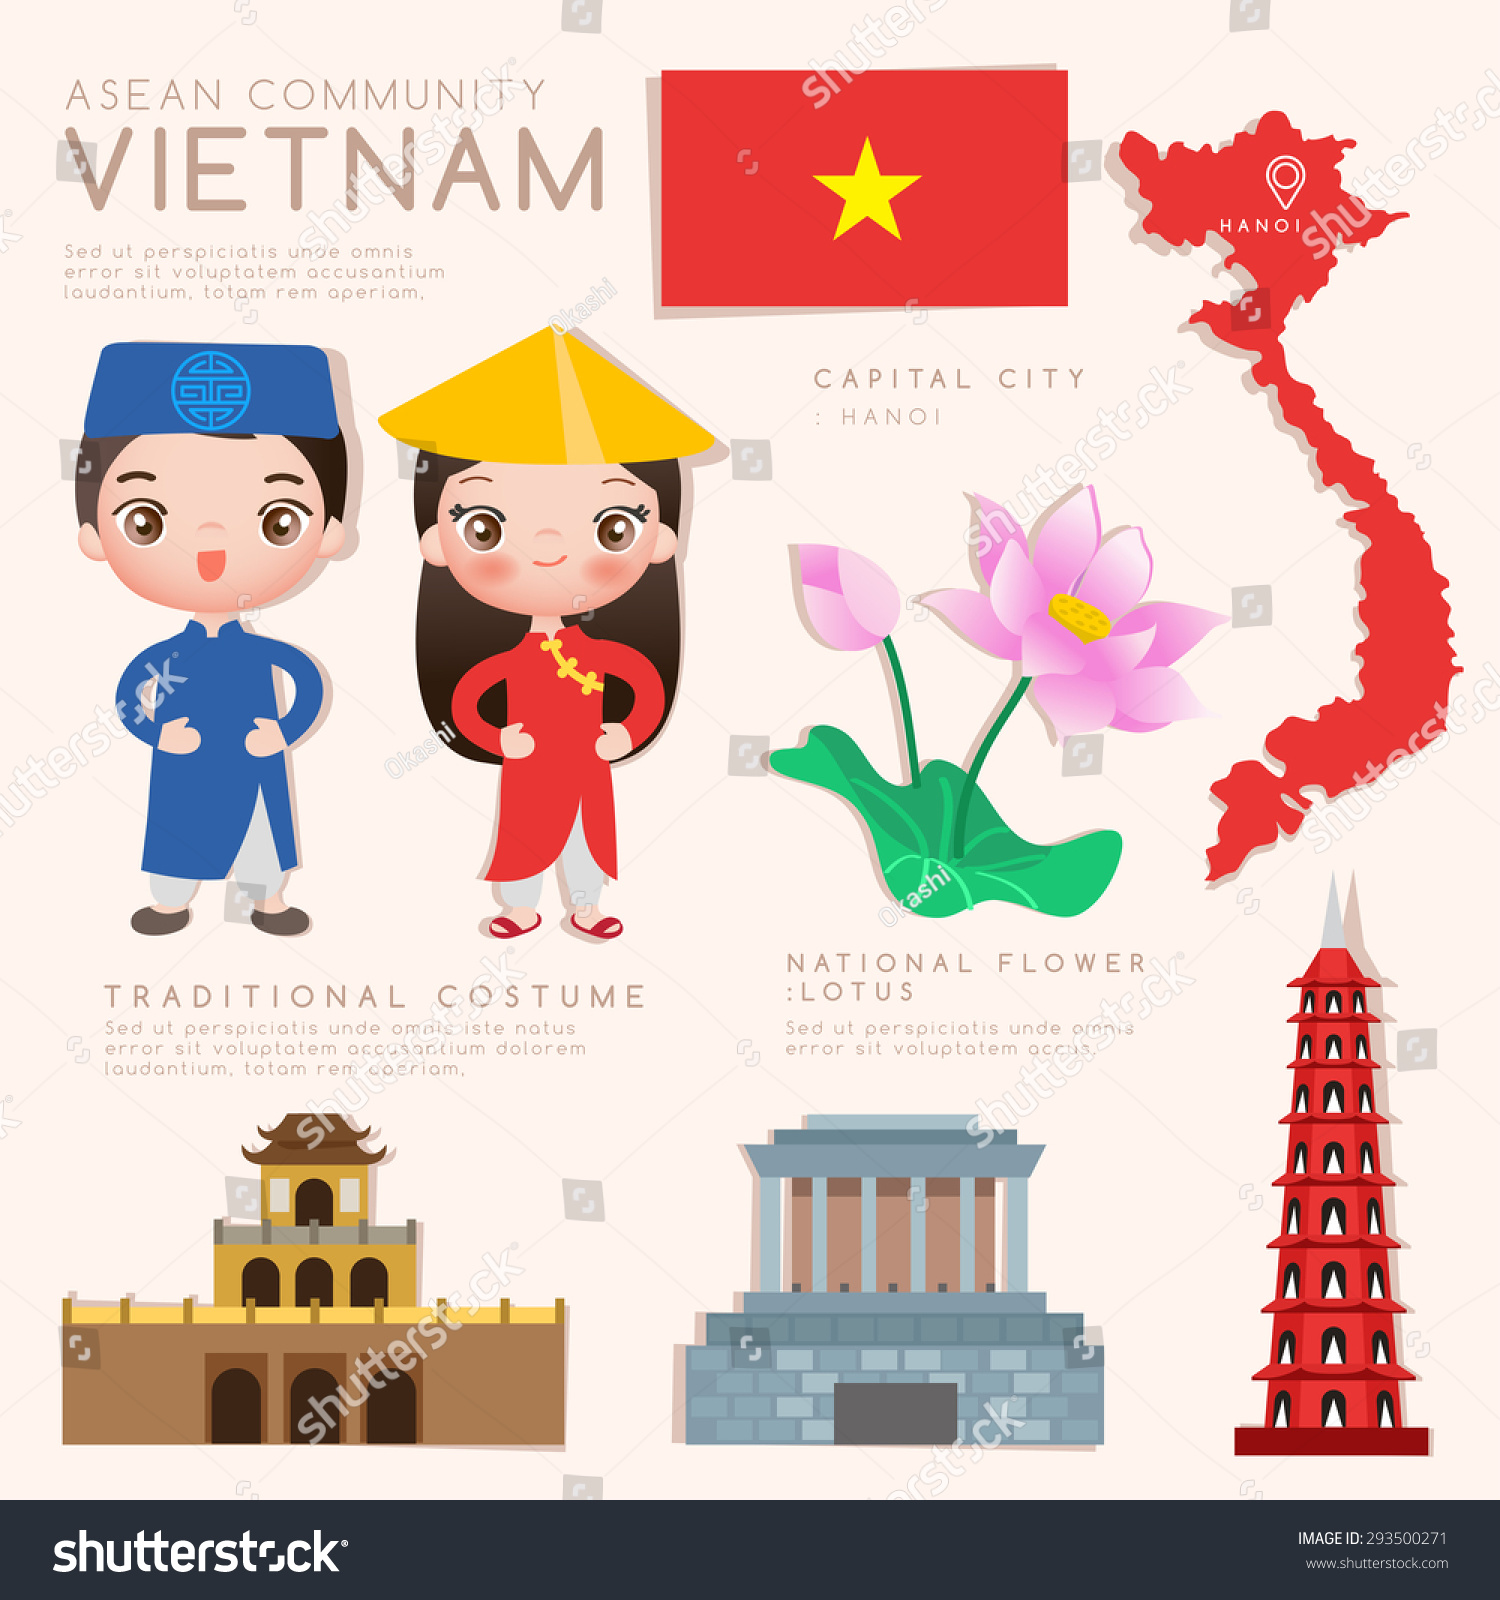 Graphic Design O Viet Nam